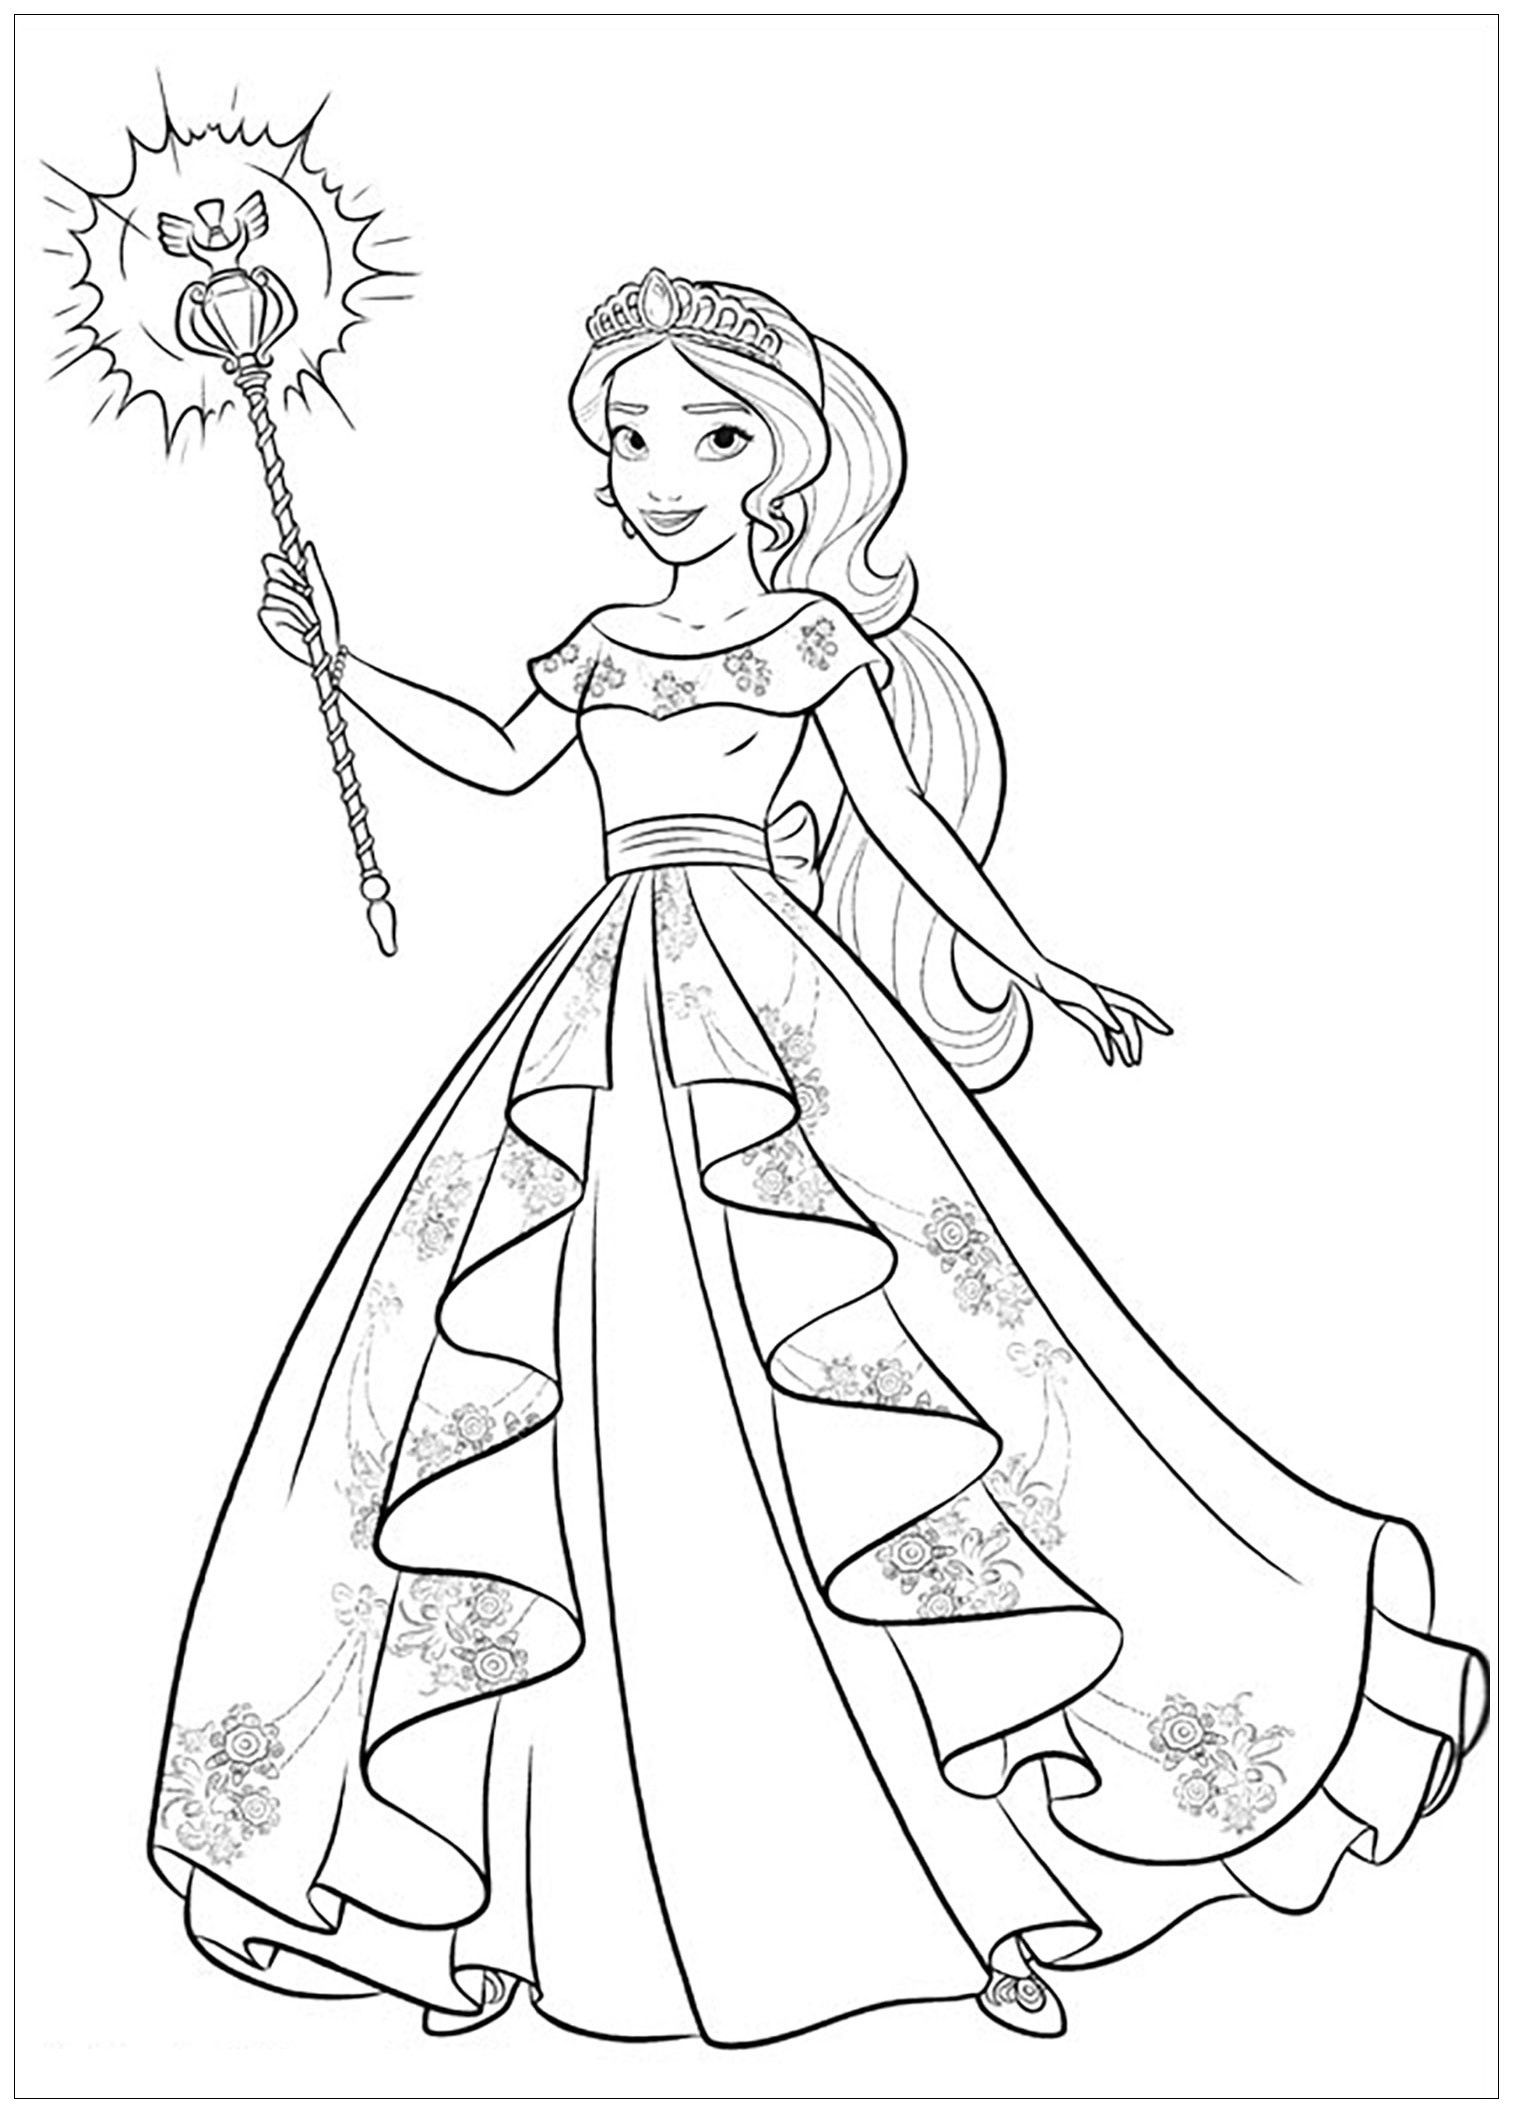 Princess Elena Coloring Page Youngandtae Com Princess Coloring Pages Disney Coloring Pages Cartoon Coloring Pages [ jpg ]